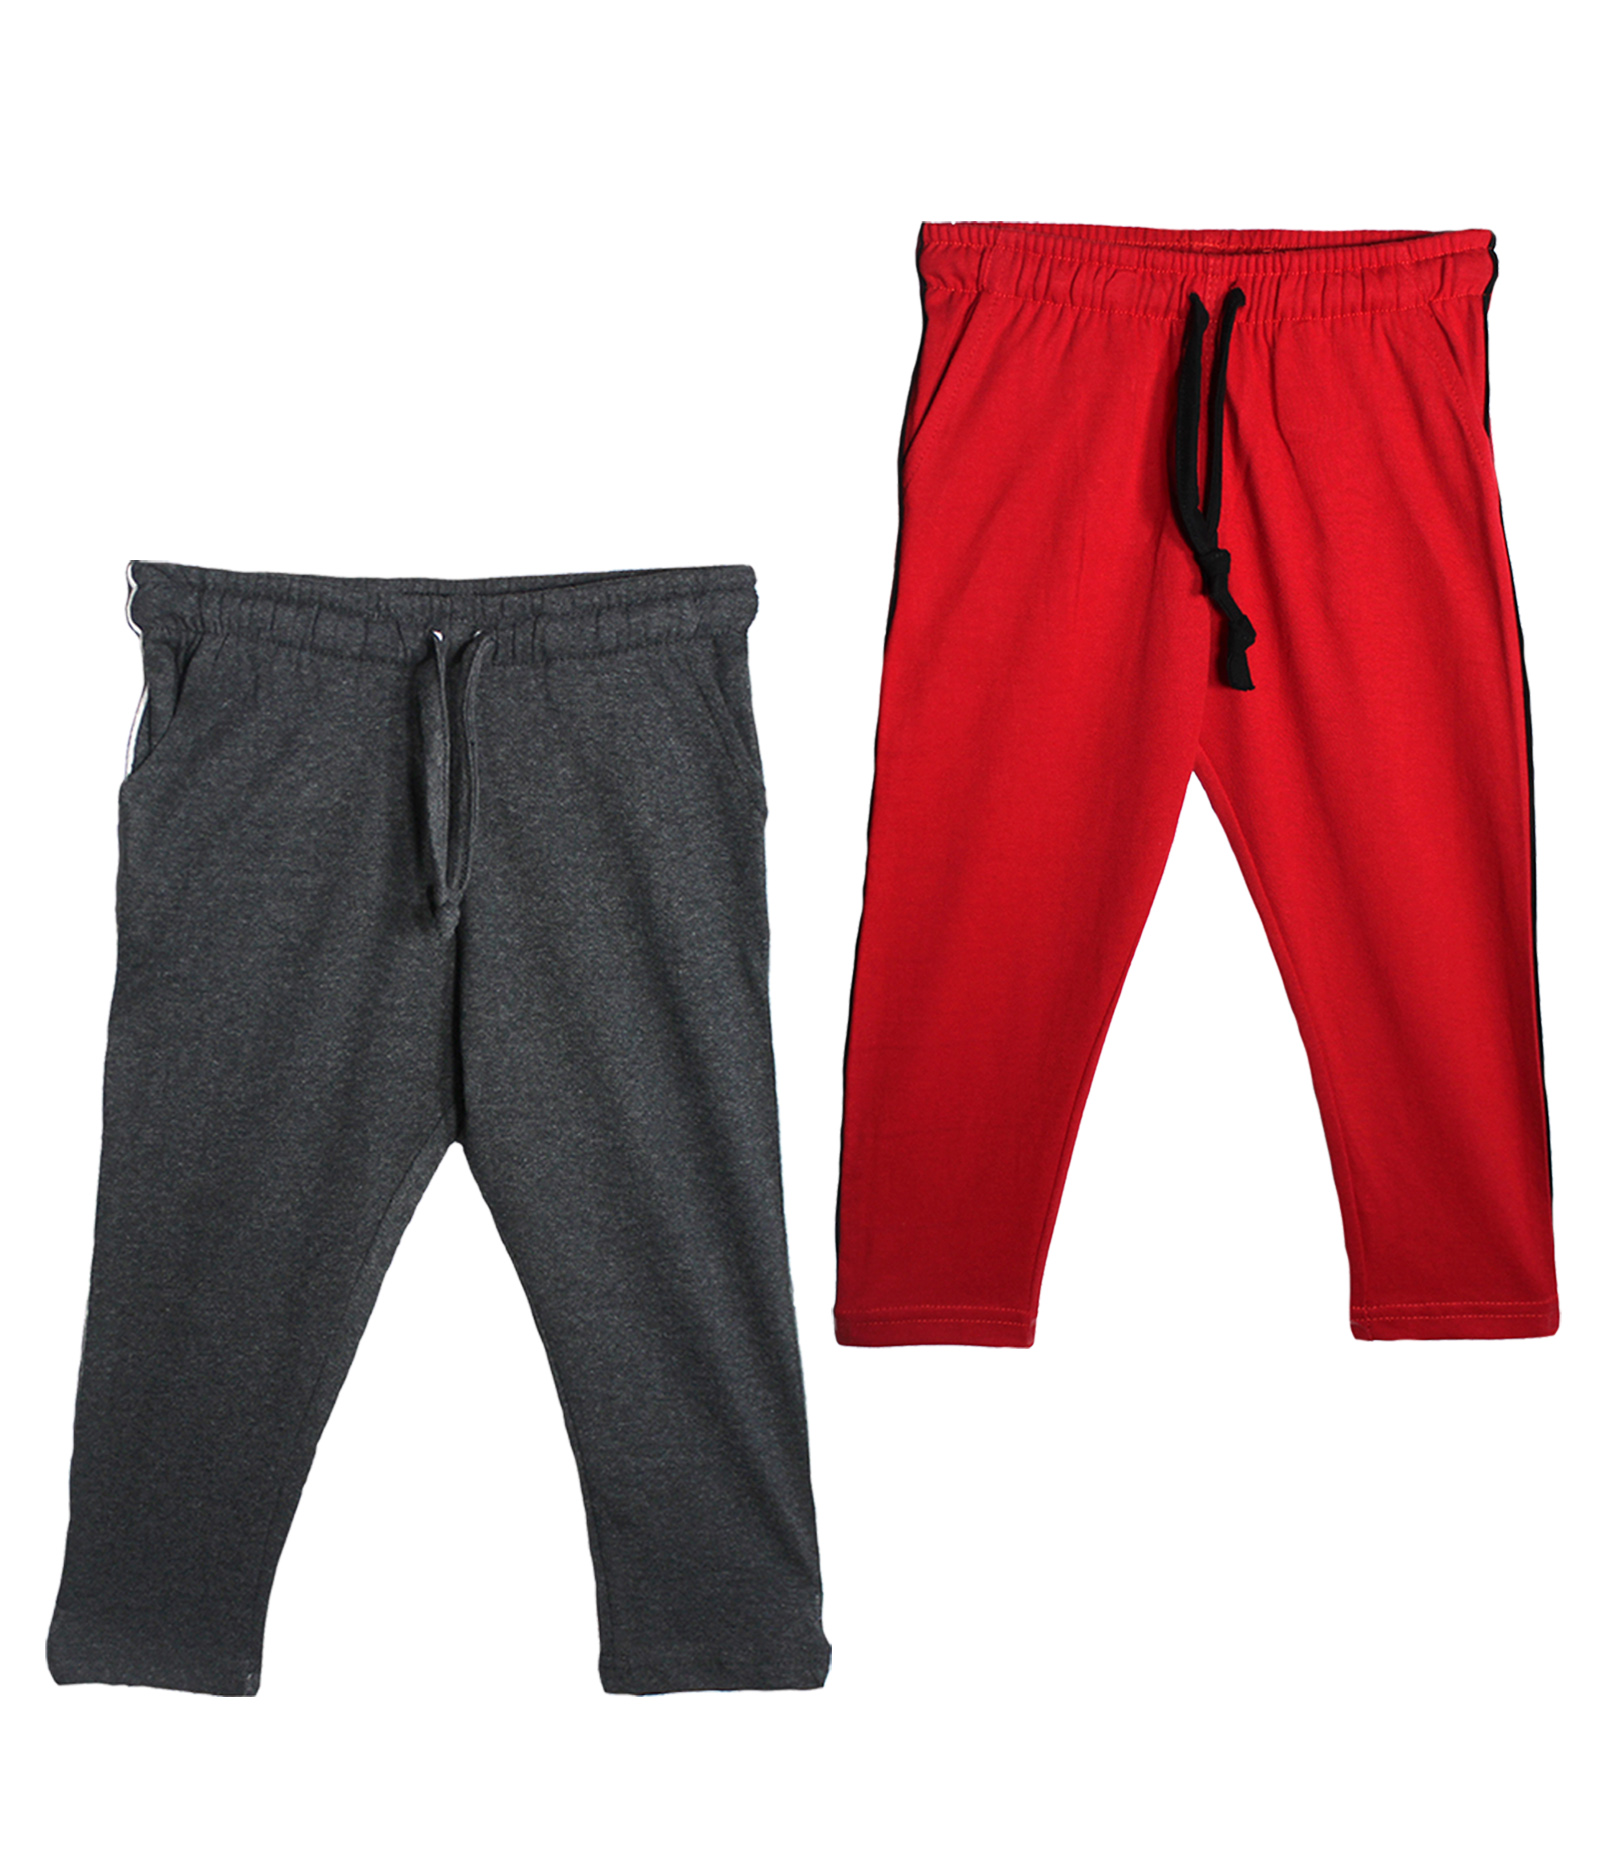 Haoser 100 % Cotton Solid Track Pants for Boys and Girls Regular fit lower   Pack of 2